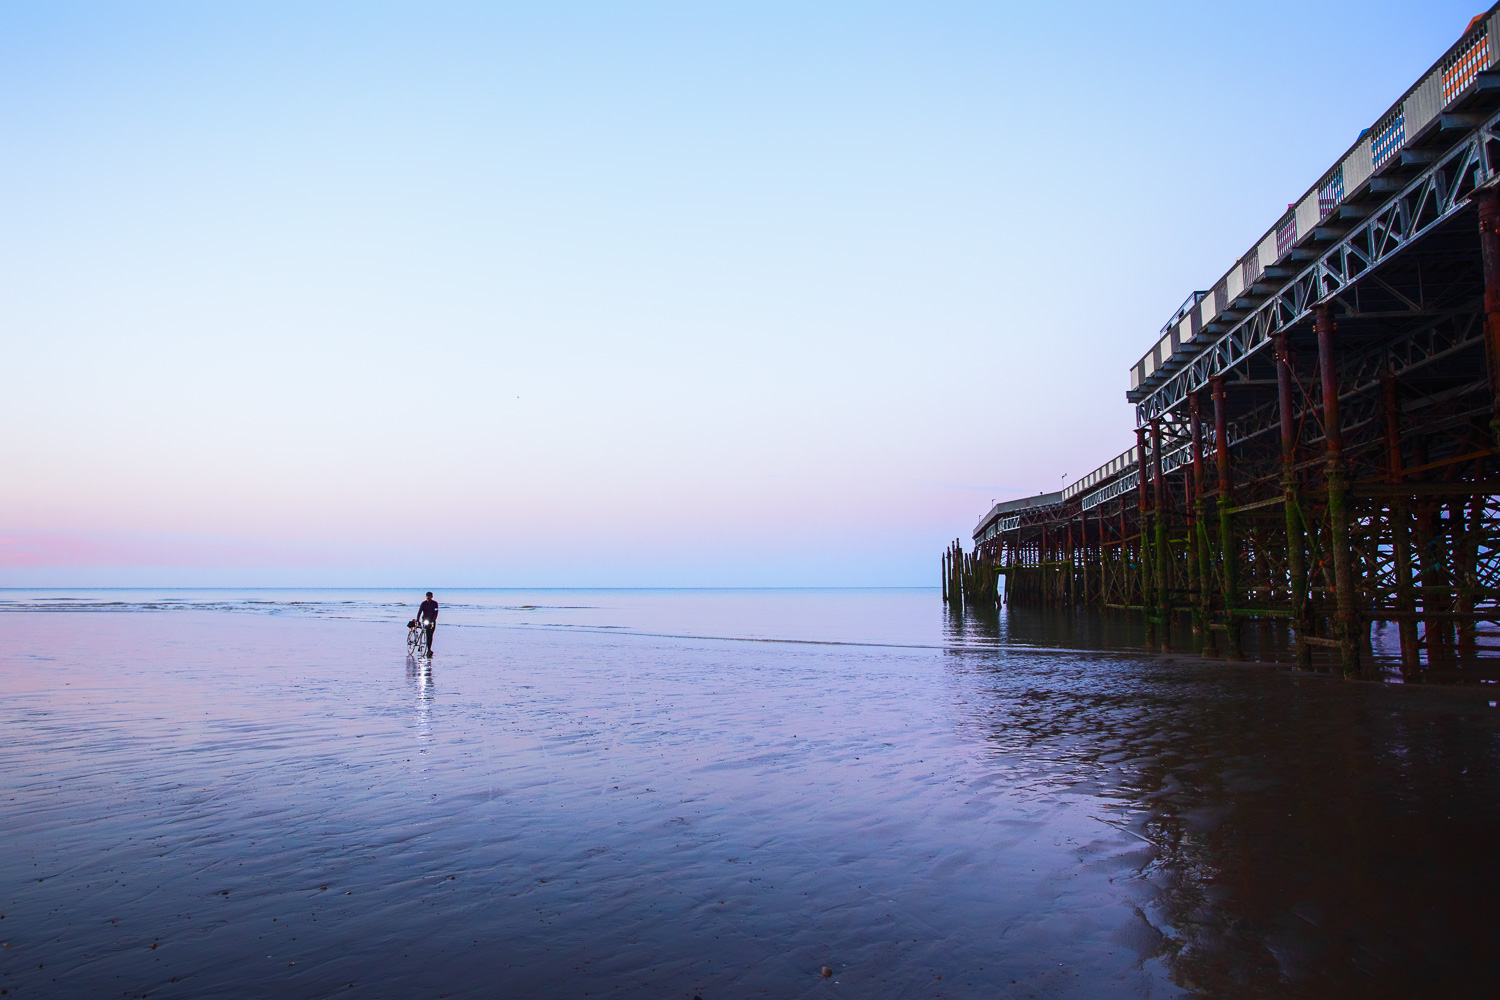 Man with bicycle walking on shimmering beach sands at dawn by pier